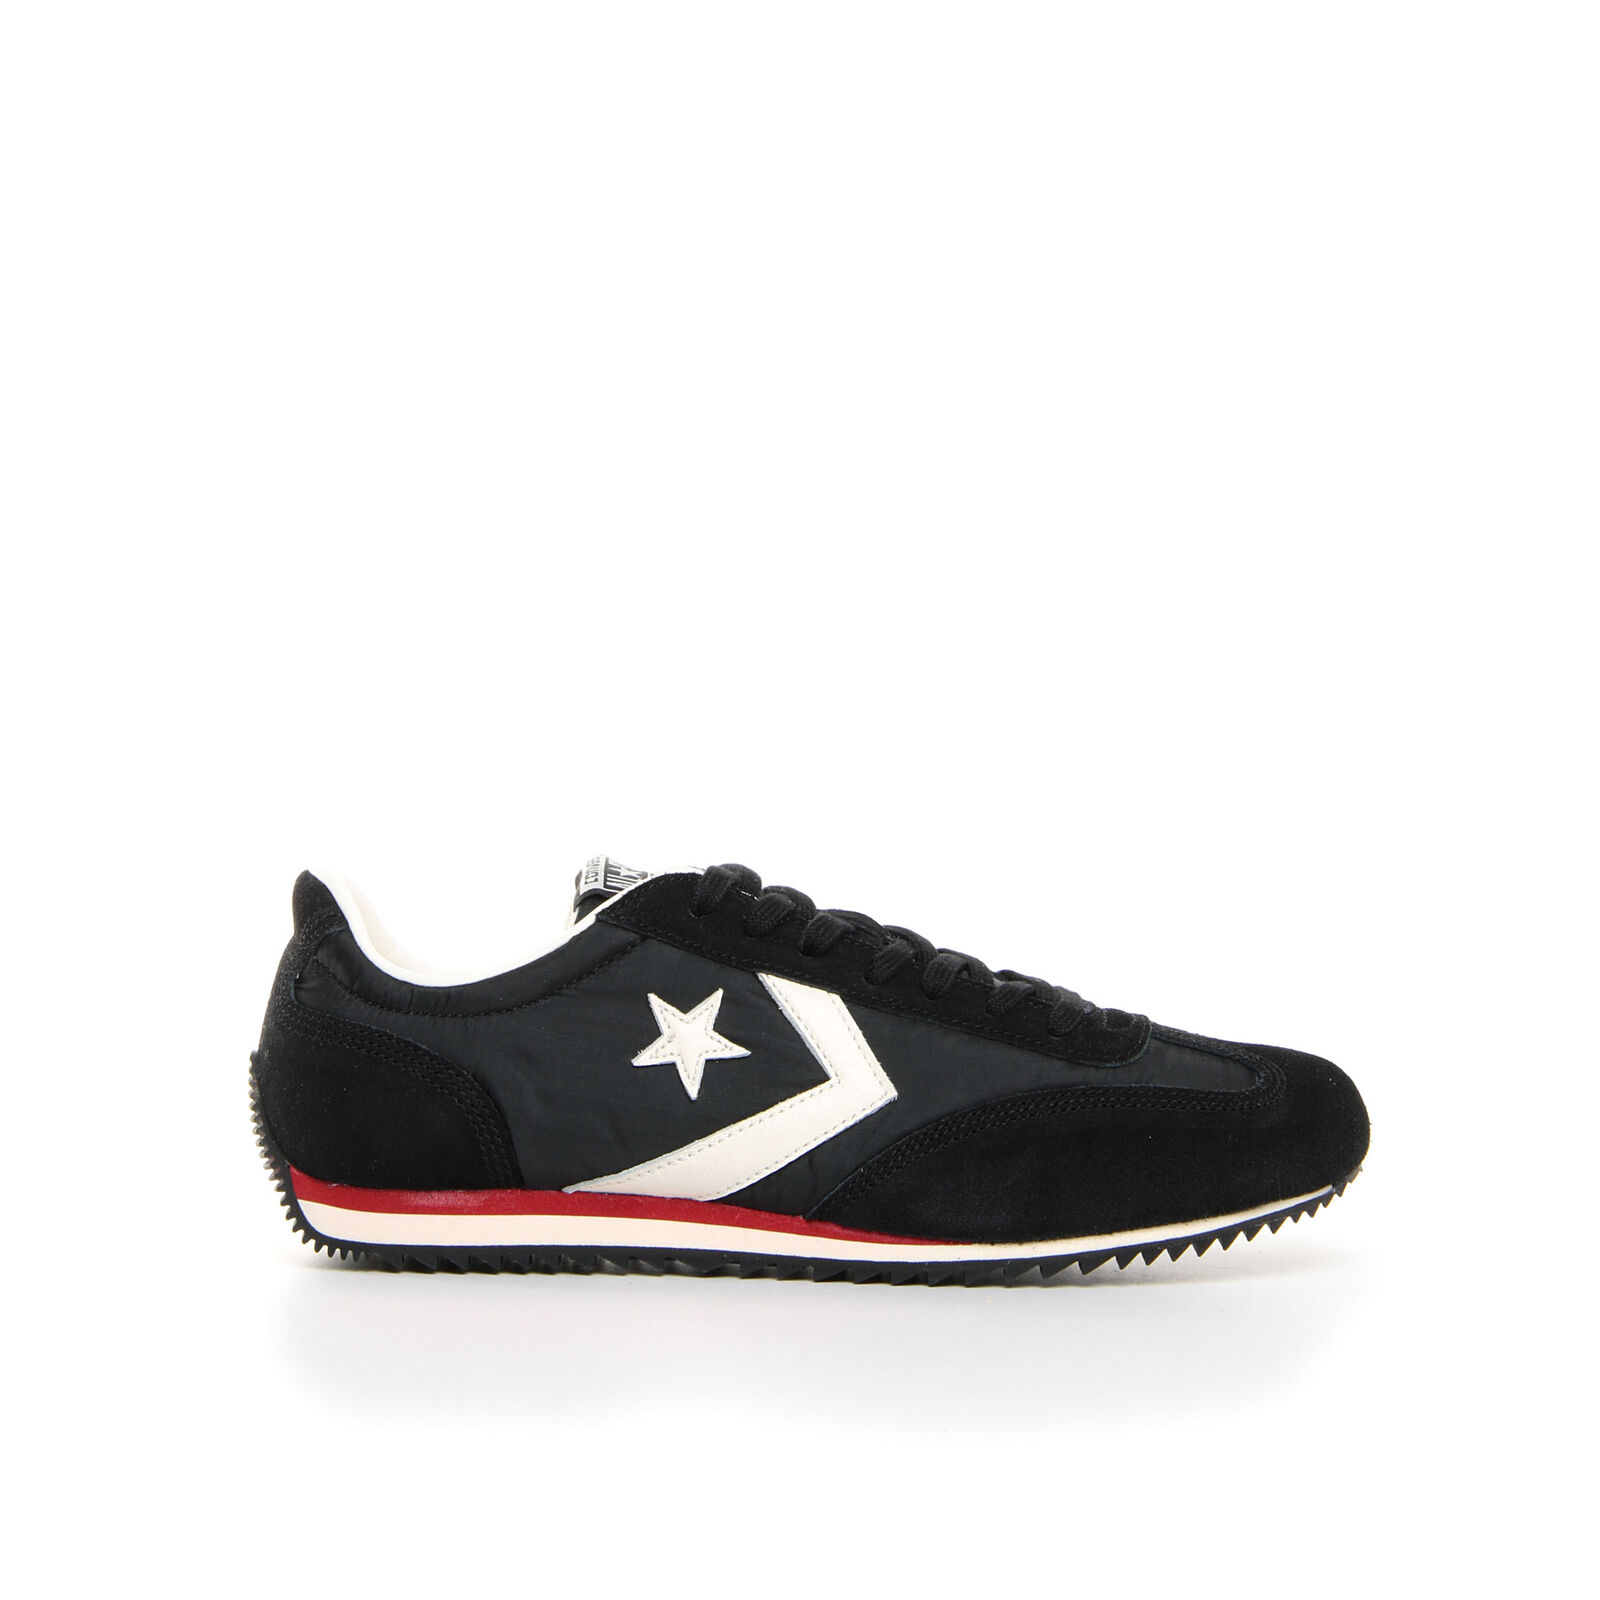 CONVERSE ALL STAR TRAINER OX shoes FREE TIME UNISEX 161230C